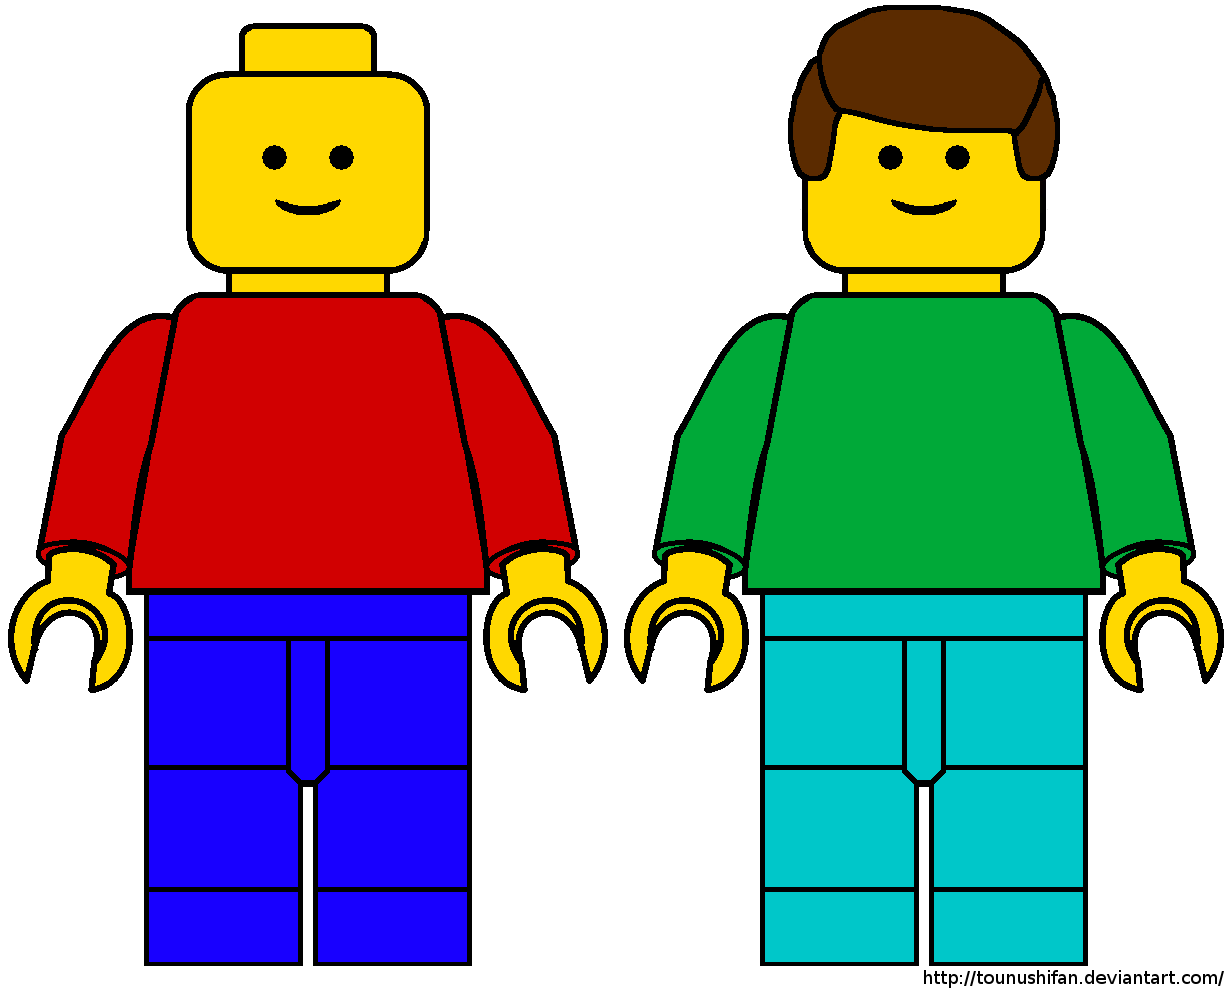 Lego minifigure clipart clip art royalty free library Free LEGO Minifigure Cliparts, Download Free Clip Art, Free ... clip art royalty free library